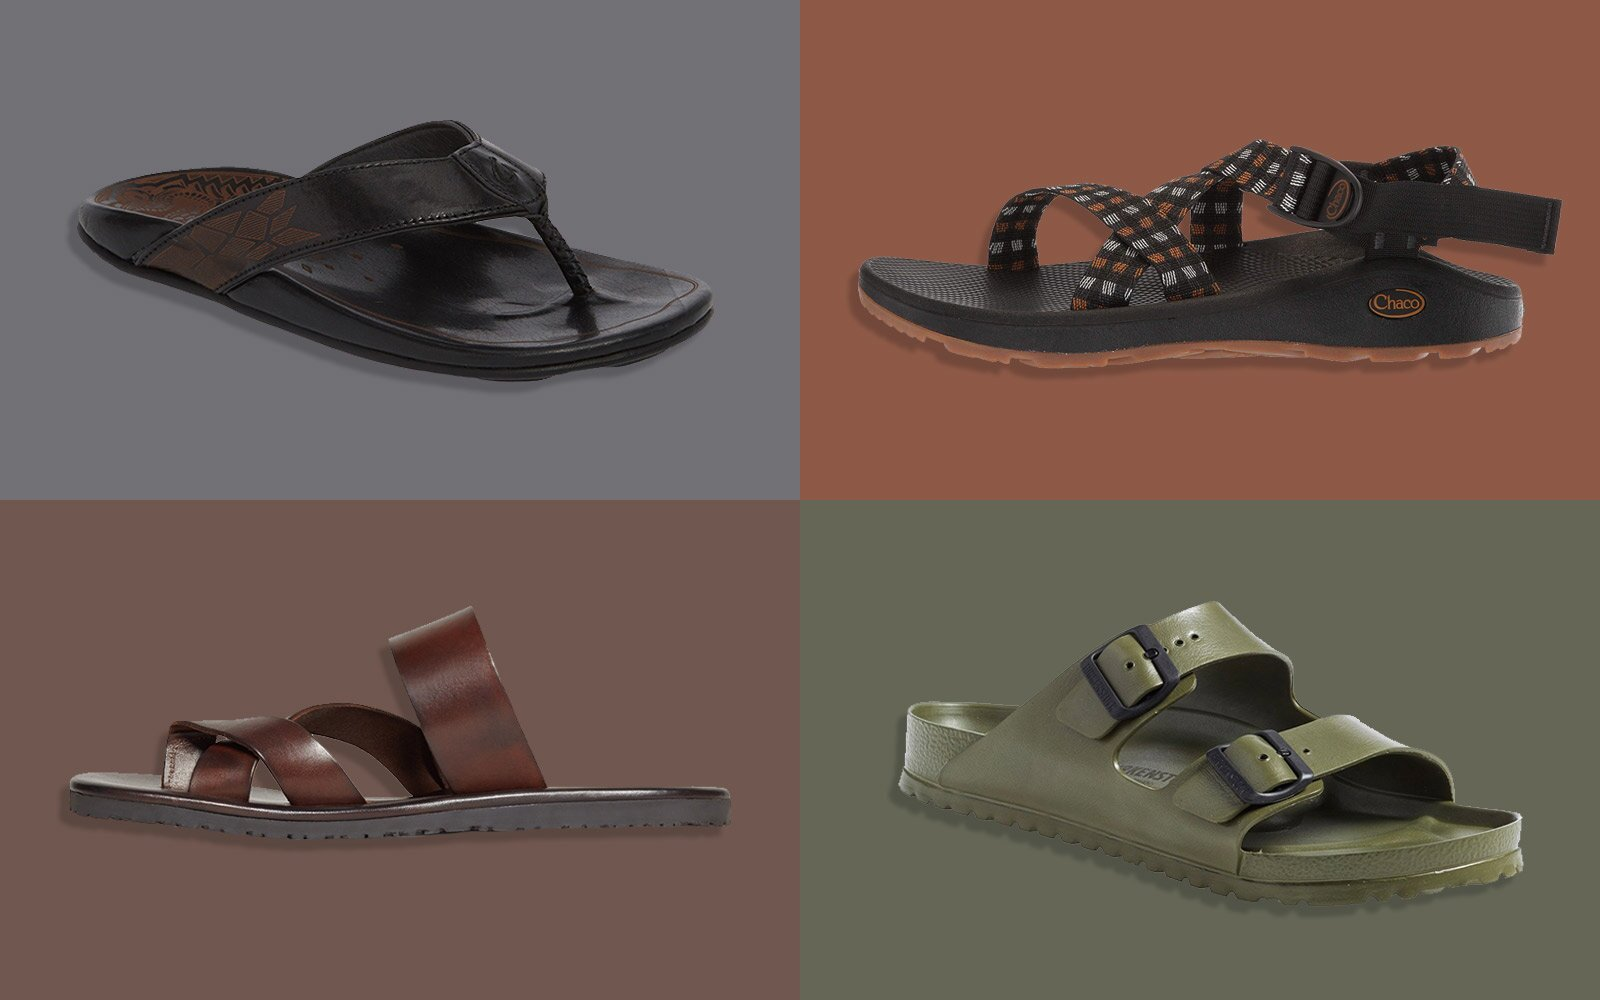 88d421b198 The Best Men's Sandals to Pack for Your Next Vacation | Travel + Leisure